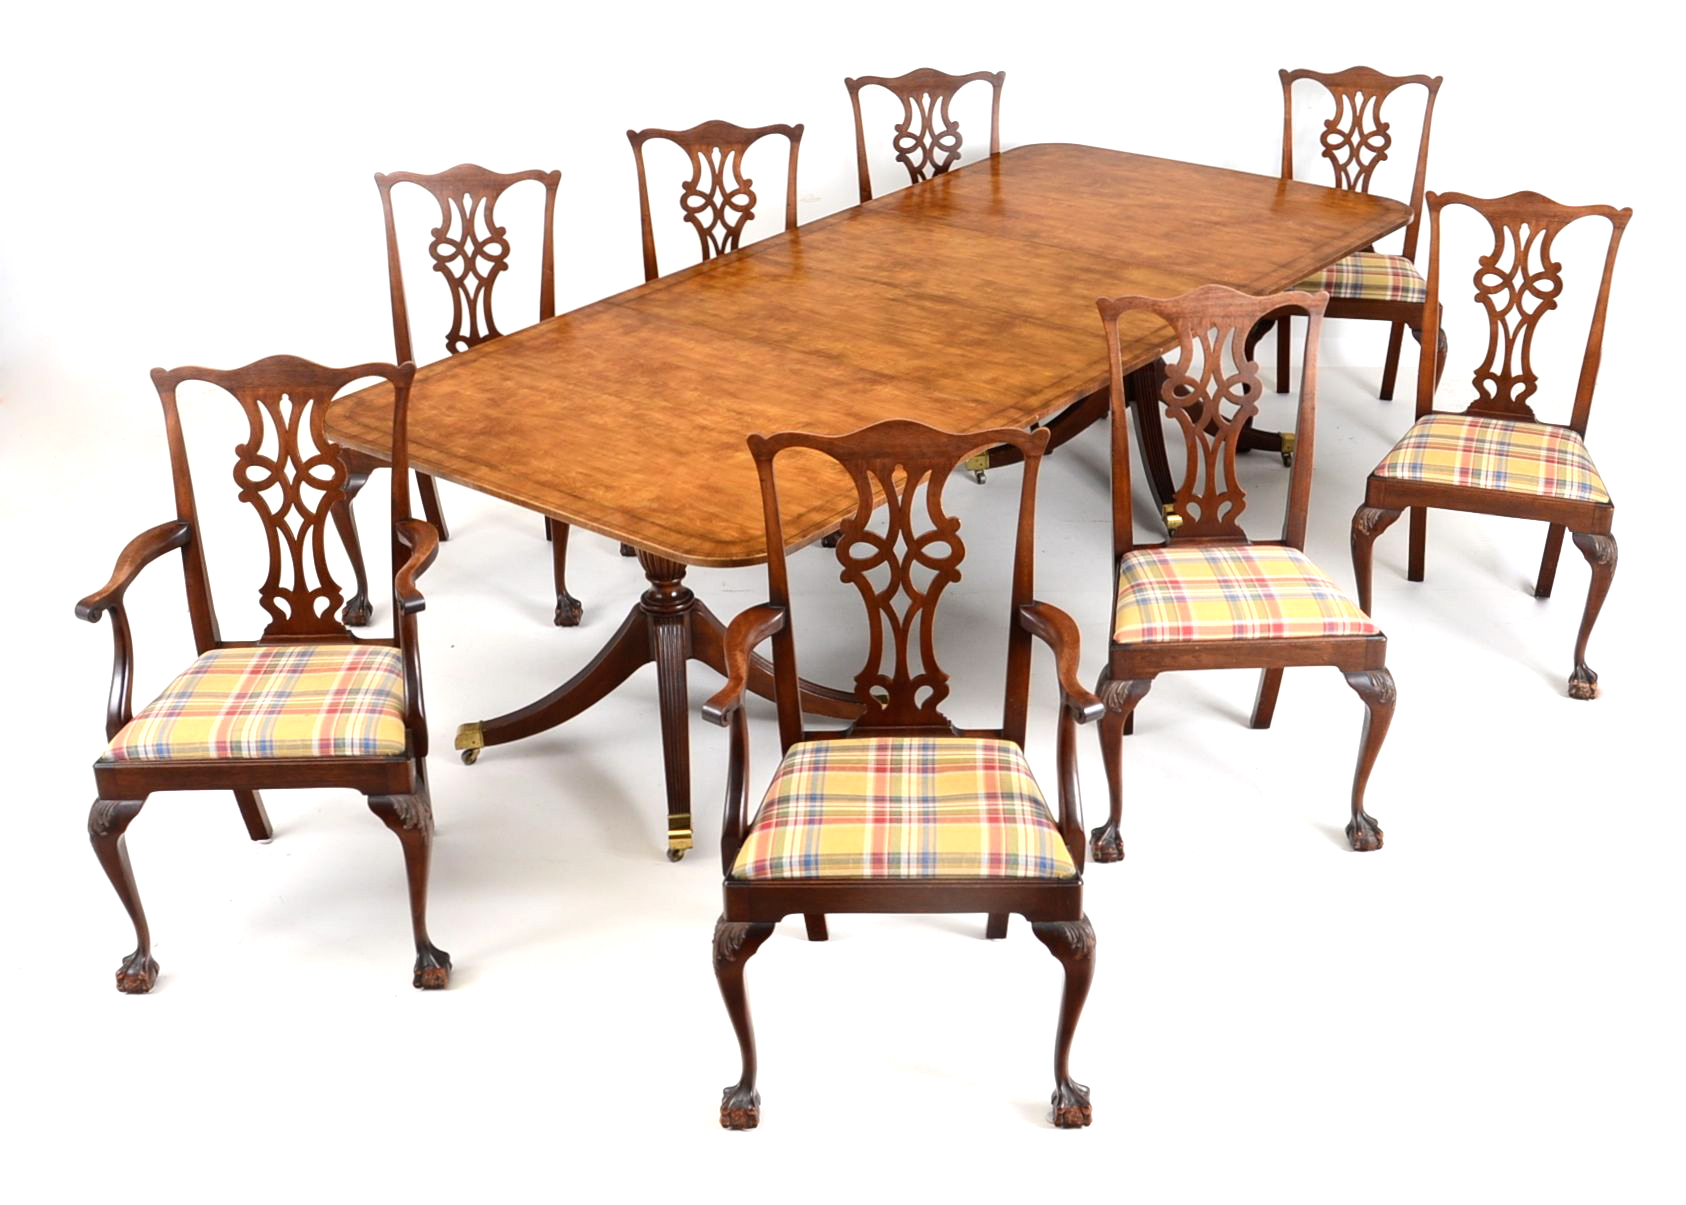 Baker Dining Room Table with Eight Chairs EBTH